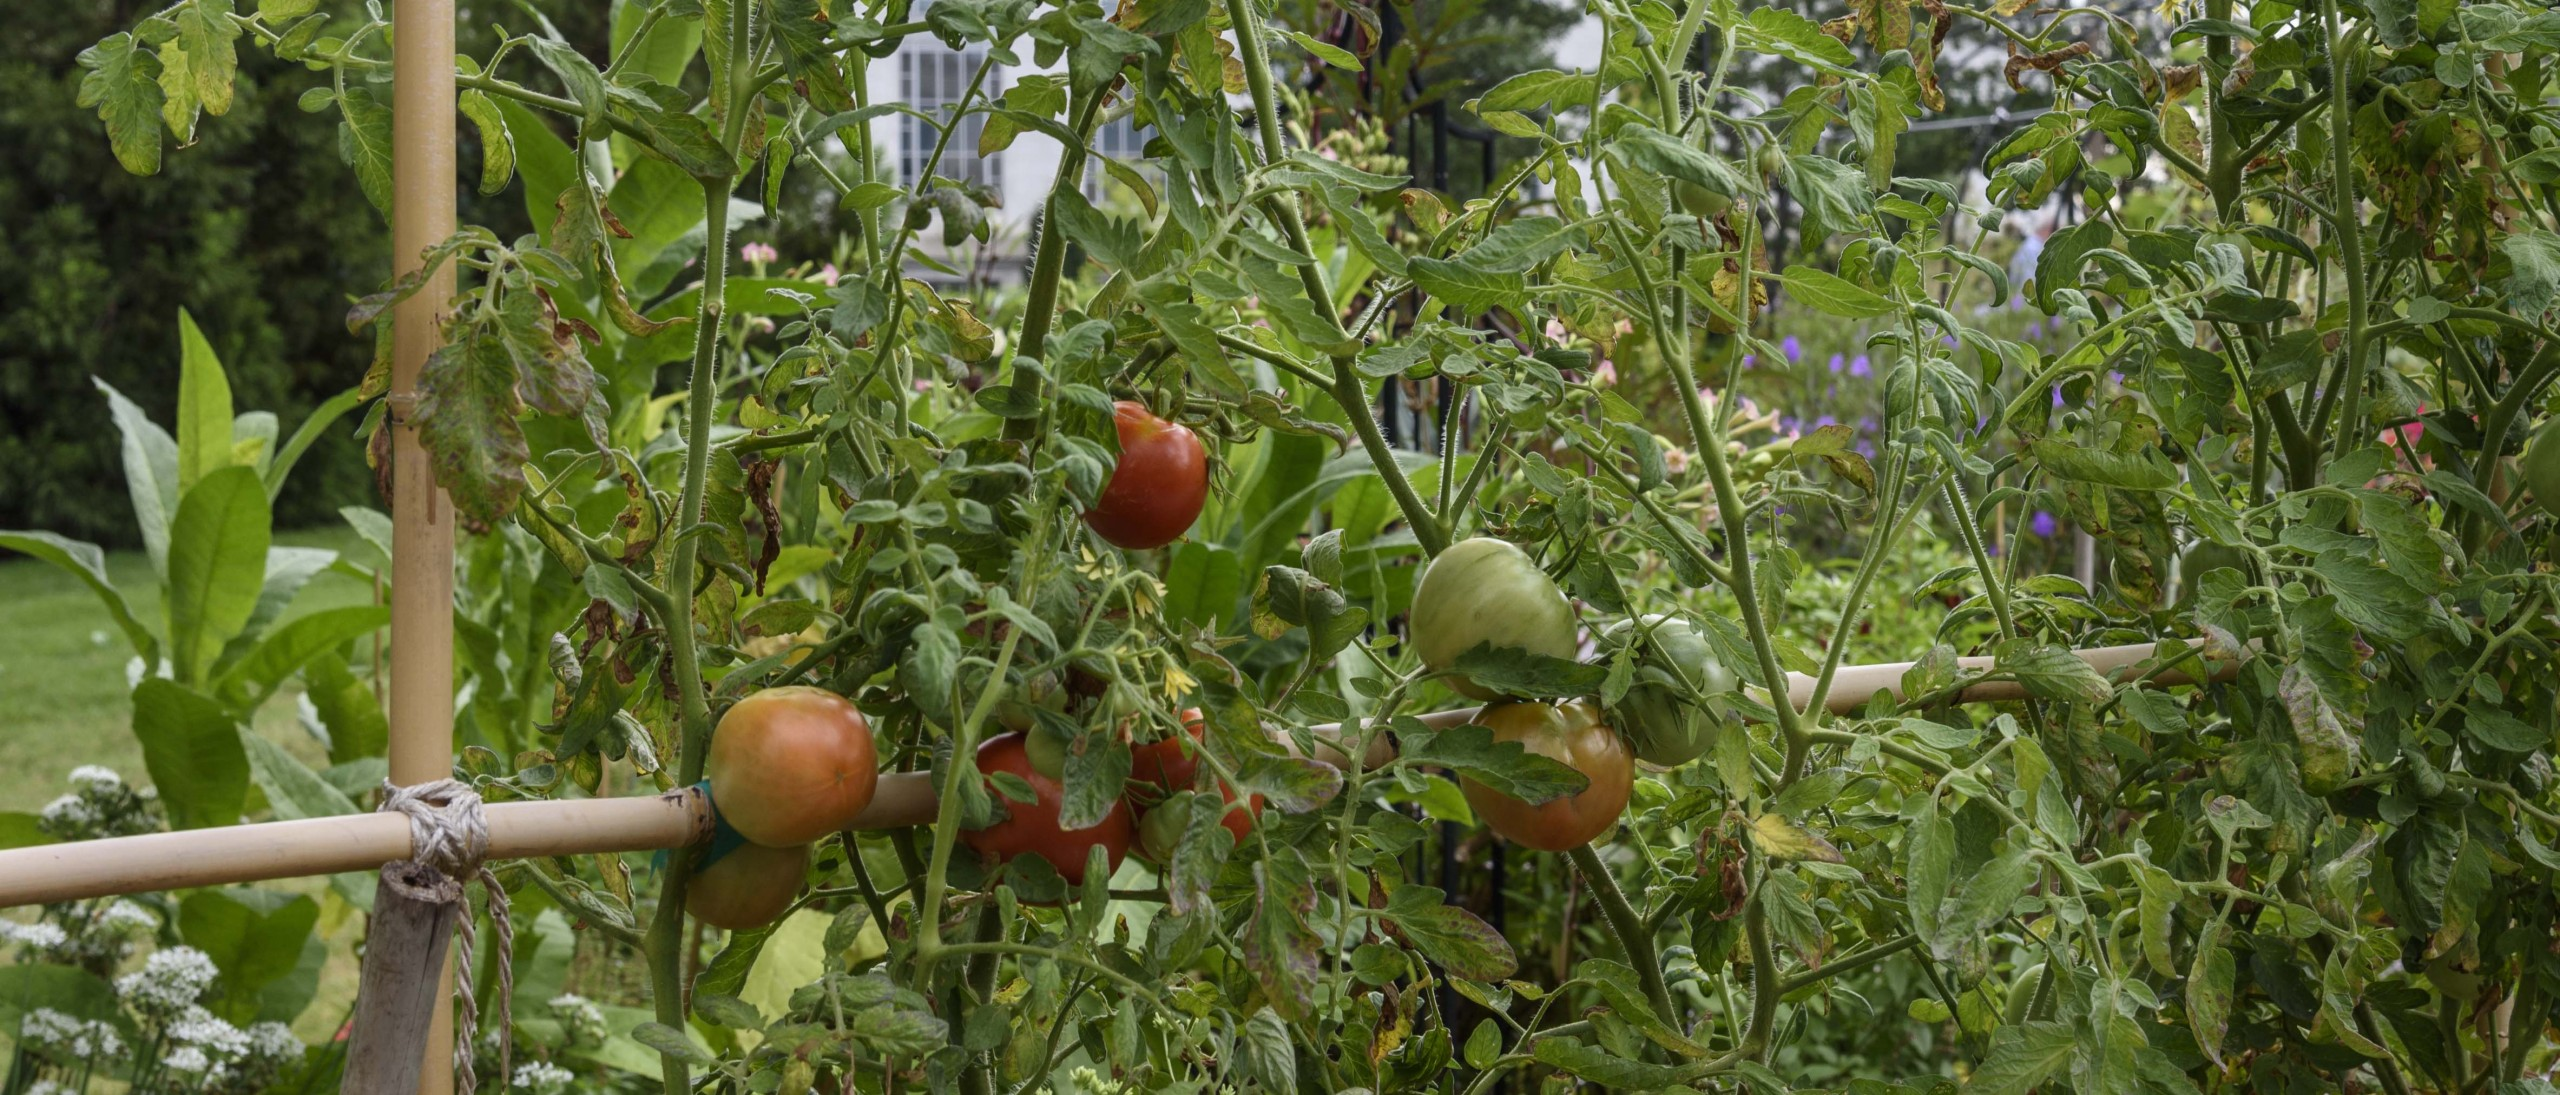 Tomatoes on a bamboo support